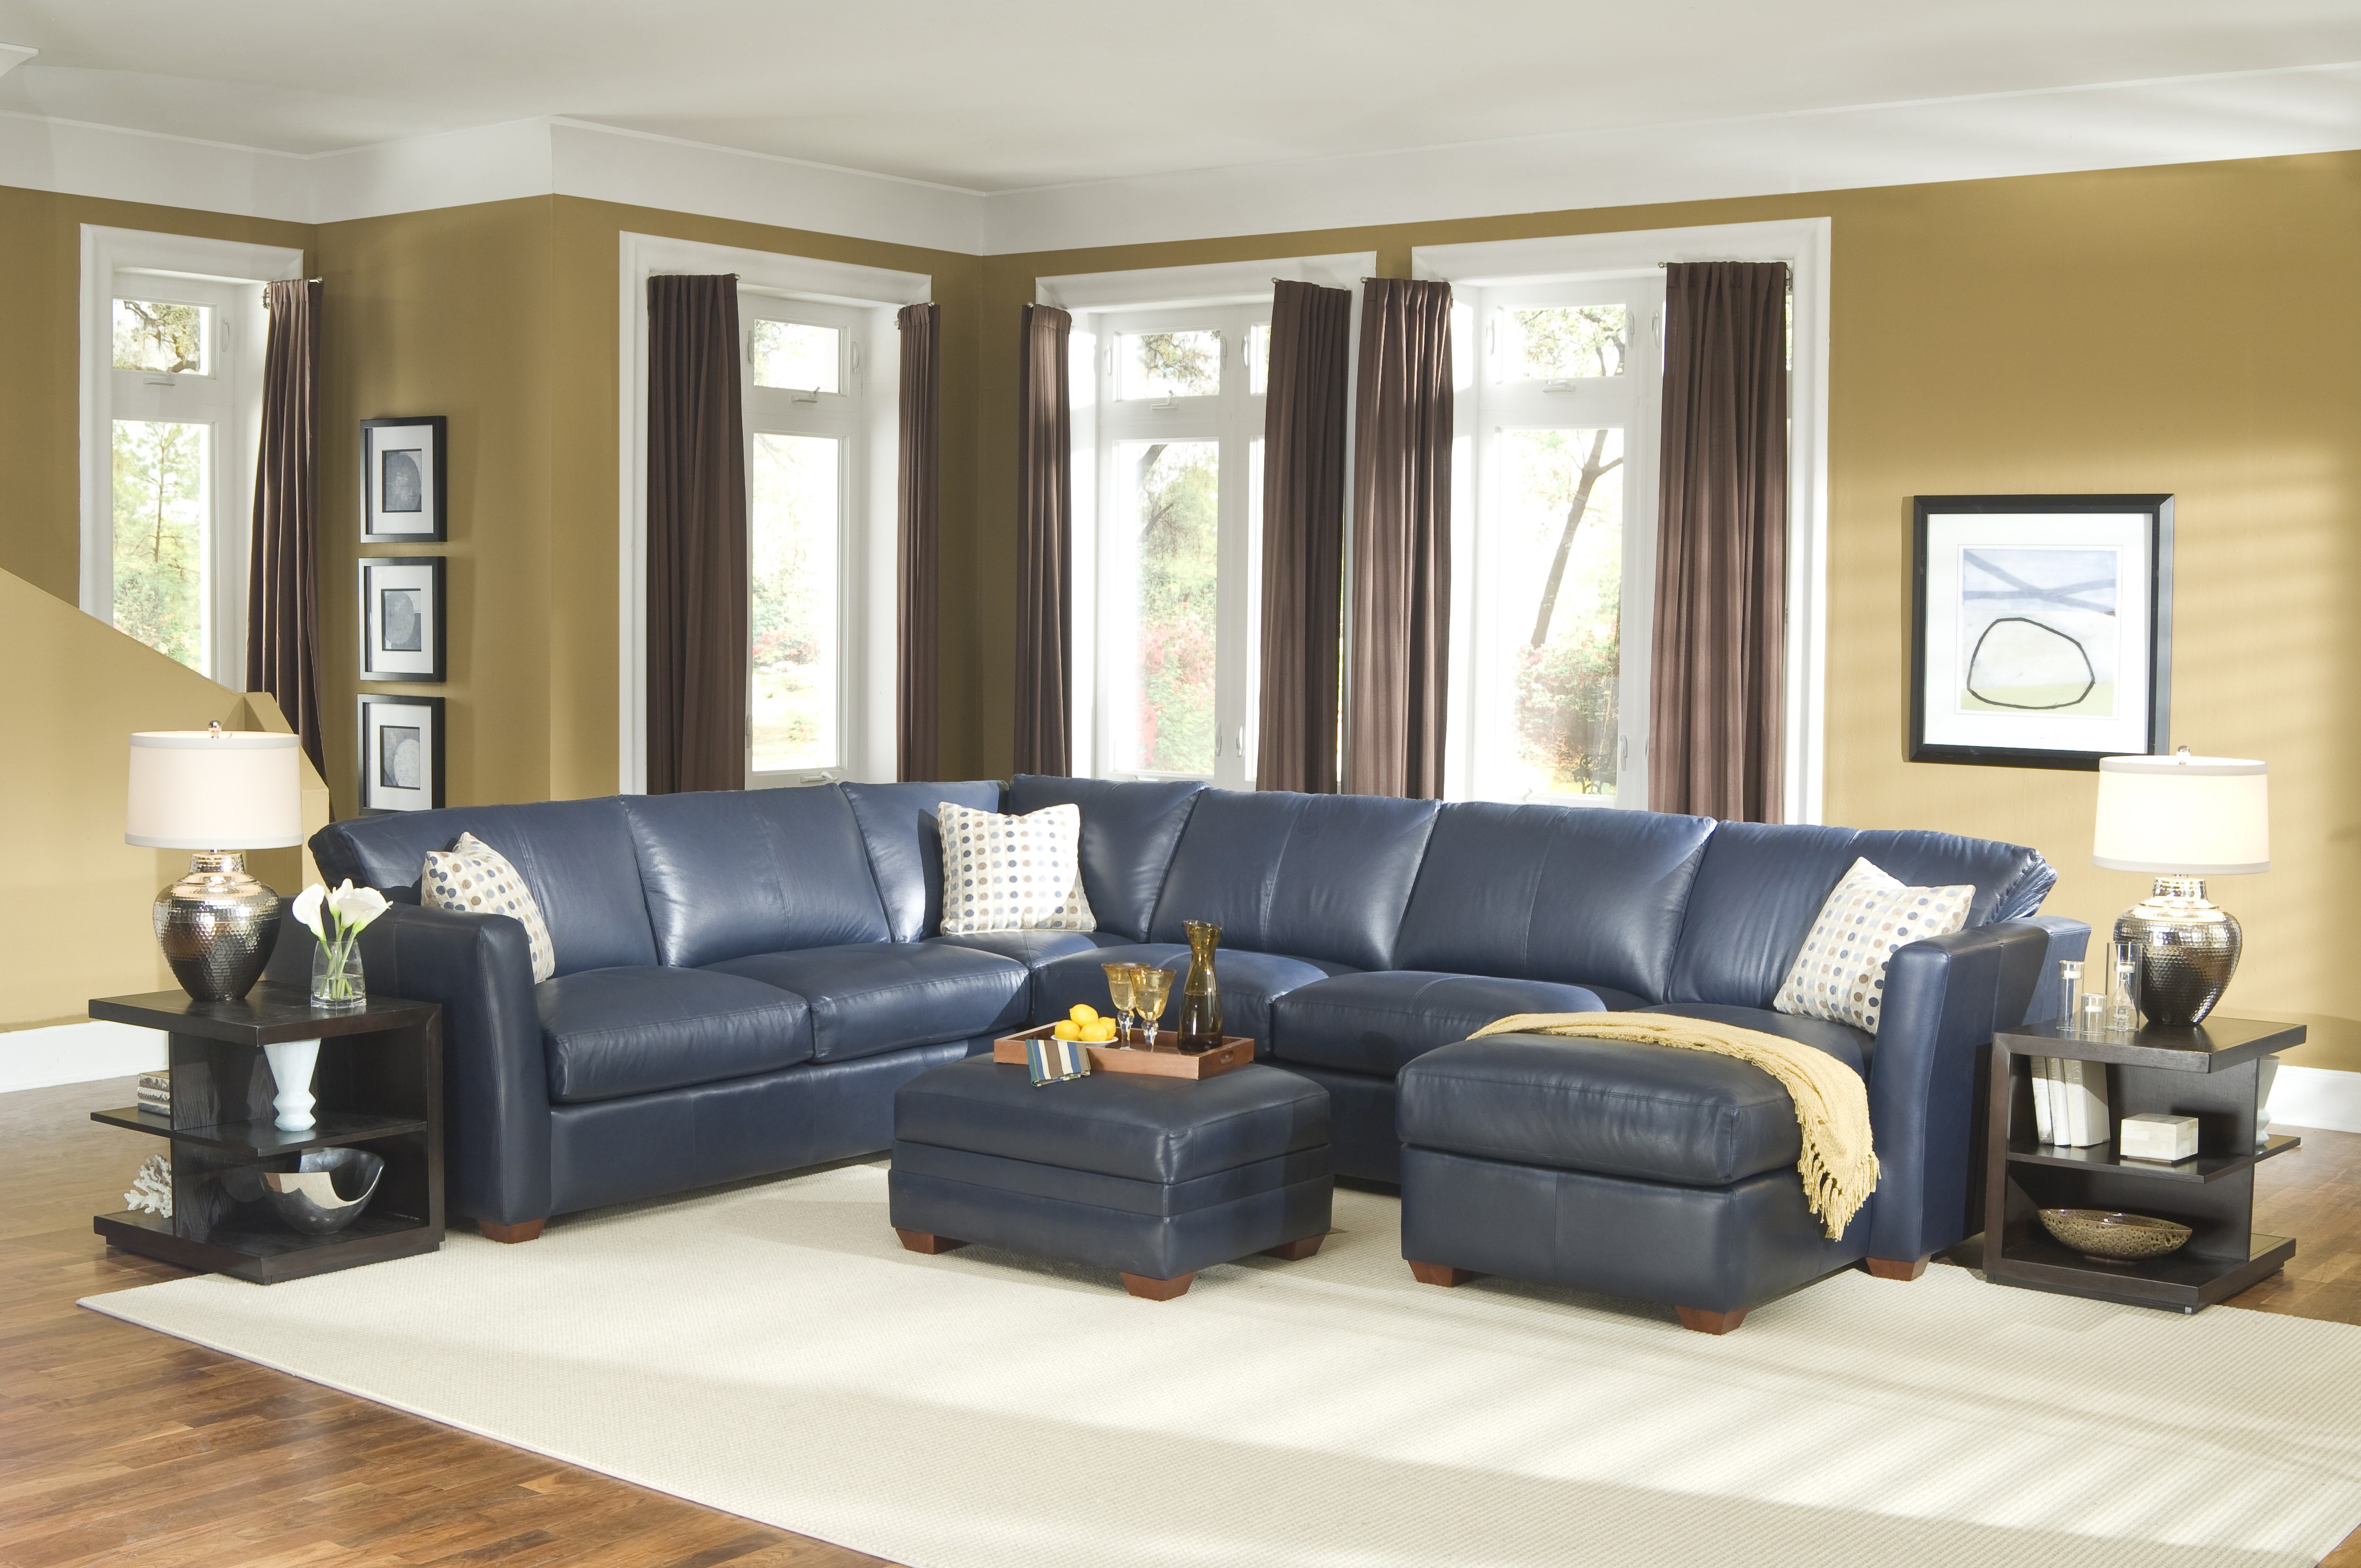 couches for dark hardwood floors of cool dark blue leather sectional sofa and white cushion added by in home interior design